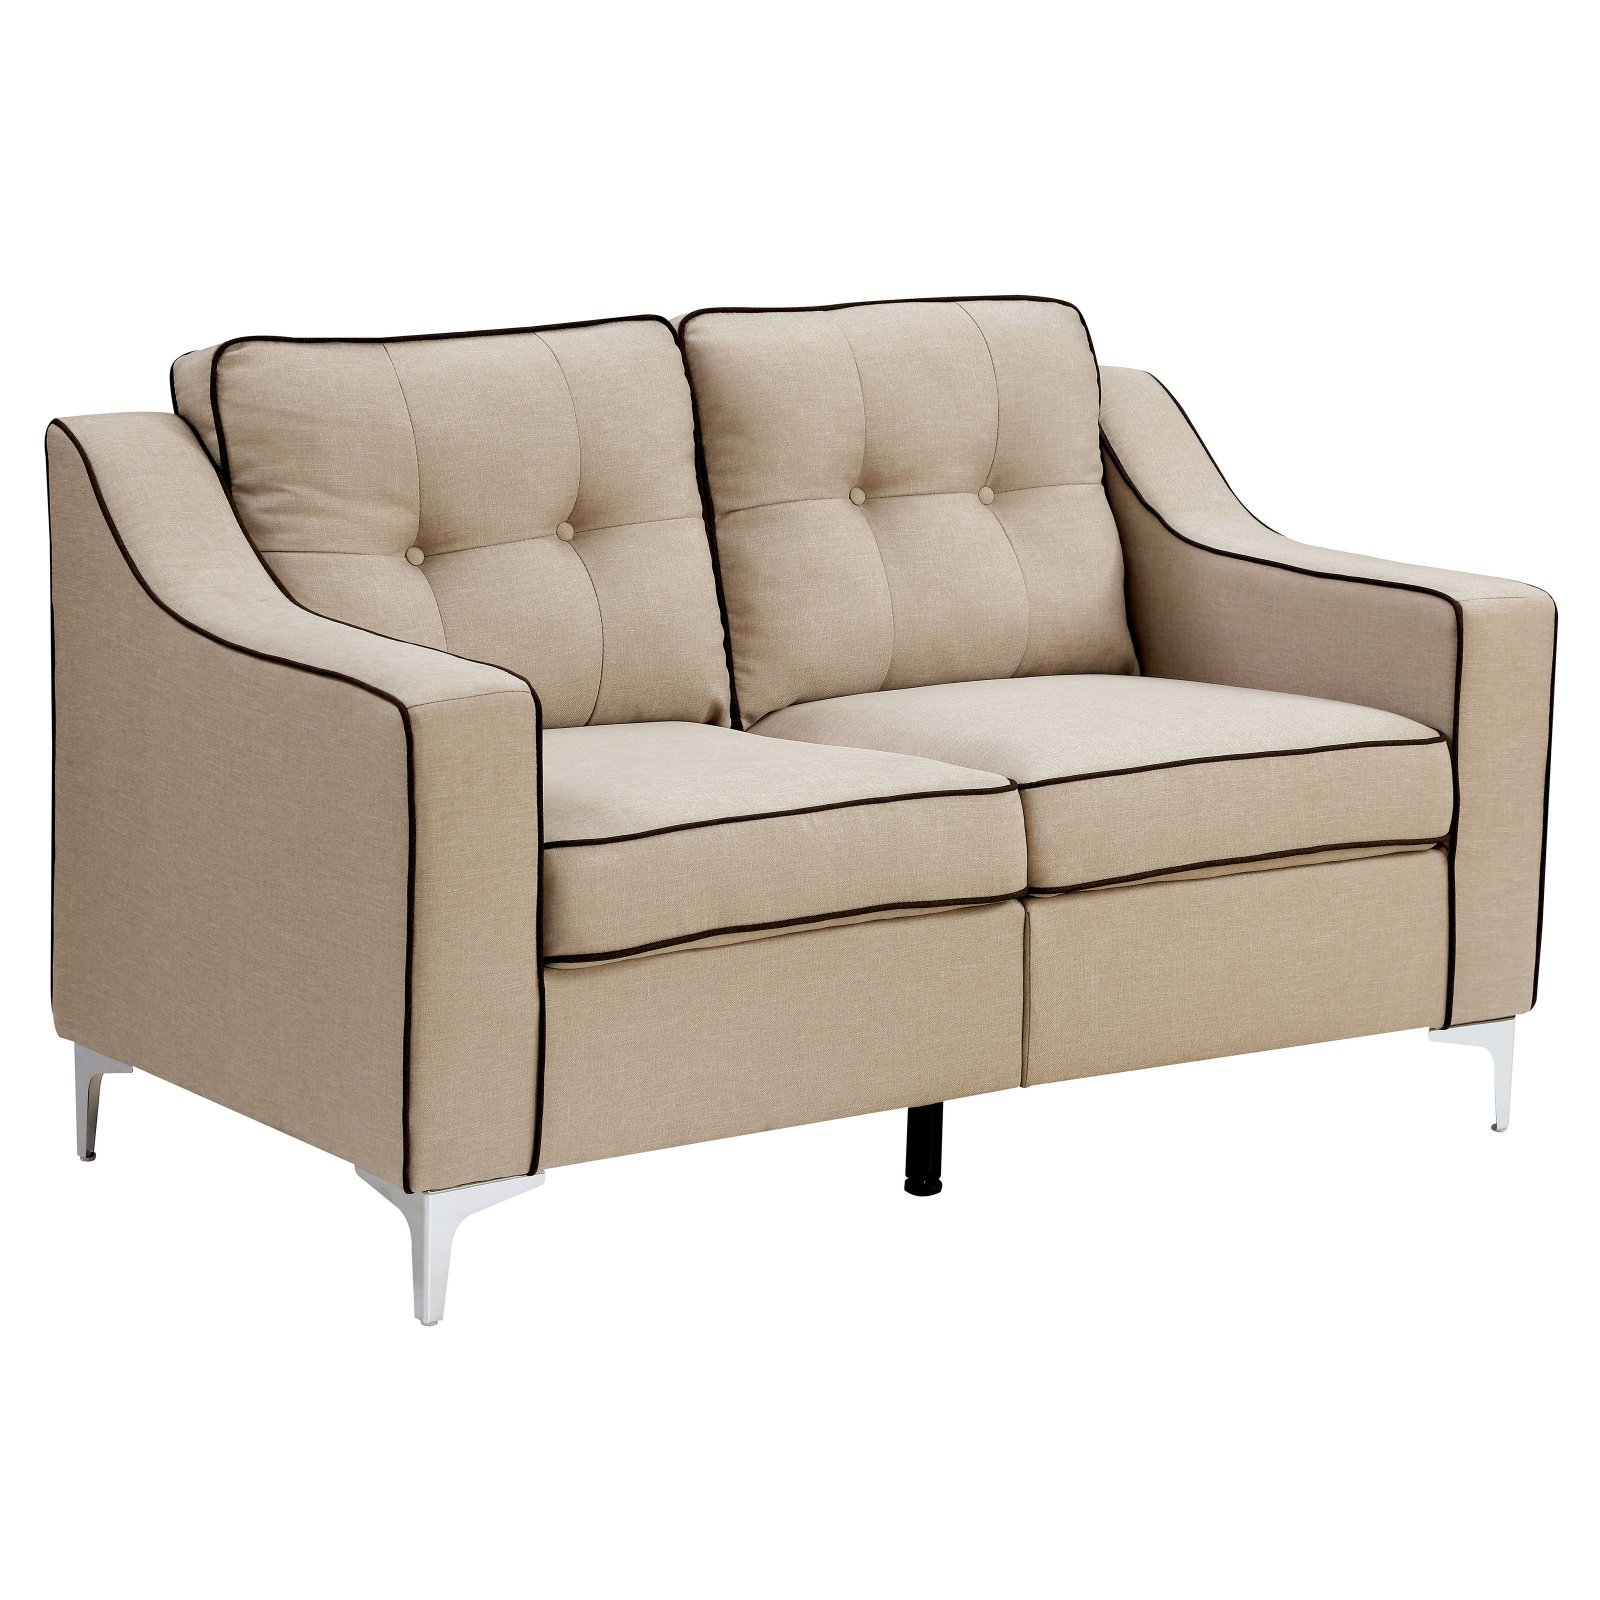 Furniture of America Lexana Contemporary Style Button Tufted Loveseat